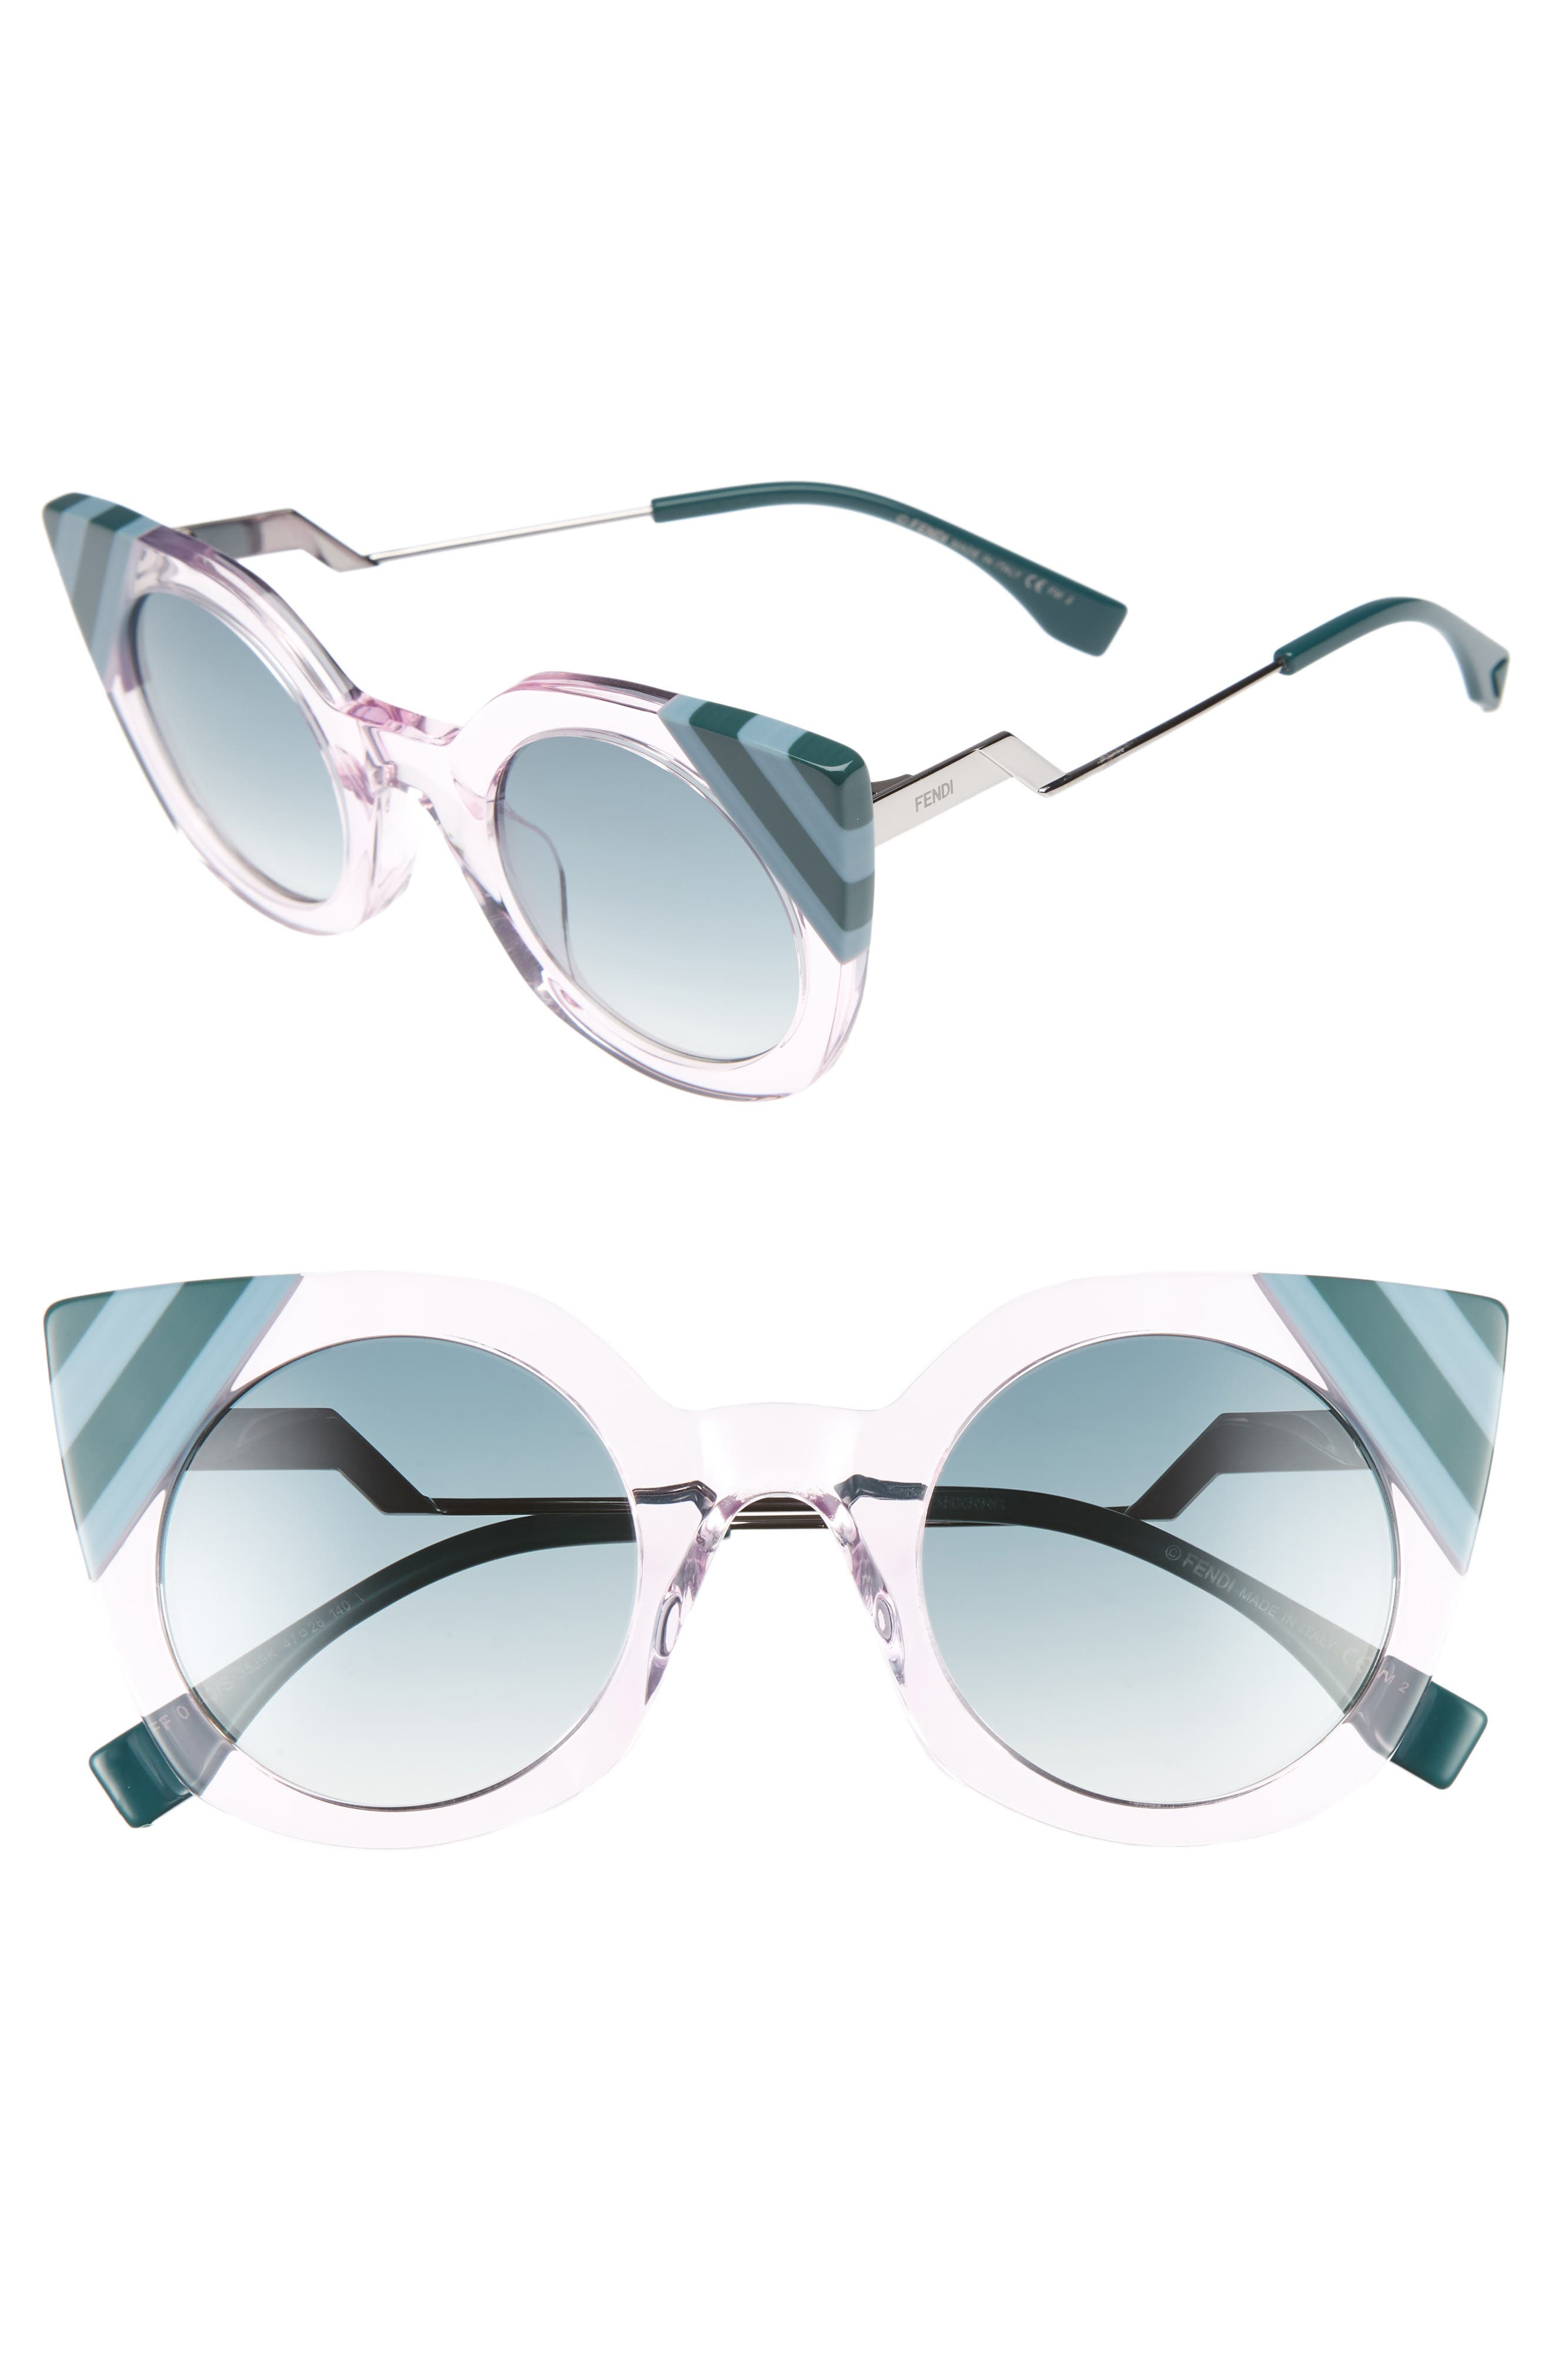 47mm Cat Eye Sunglasses,                             Main thumbnail 1, color,                             Pink